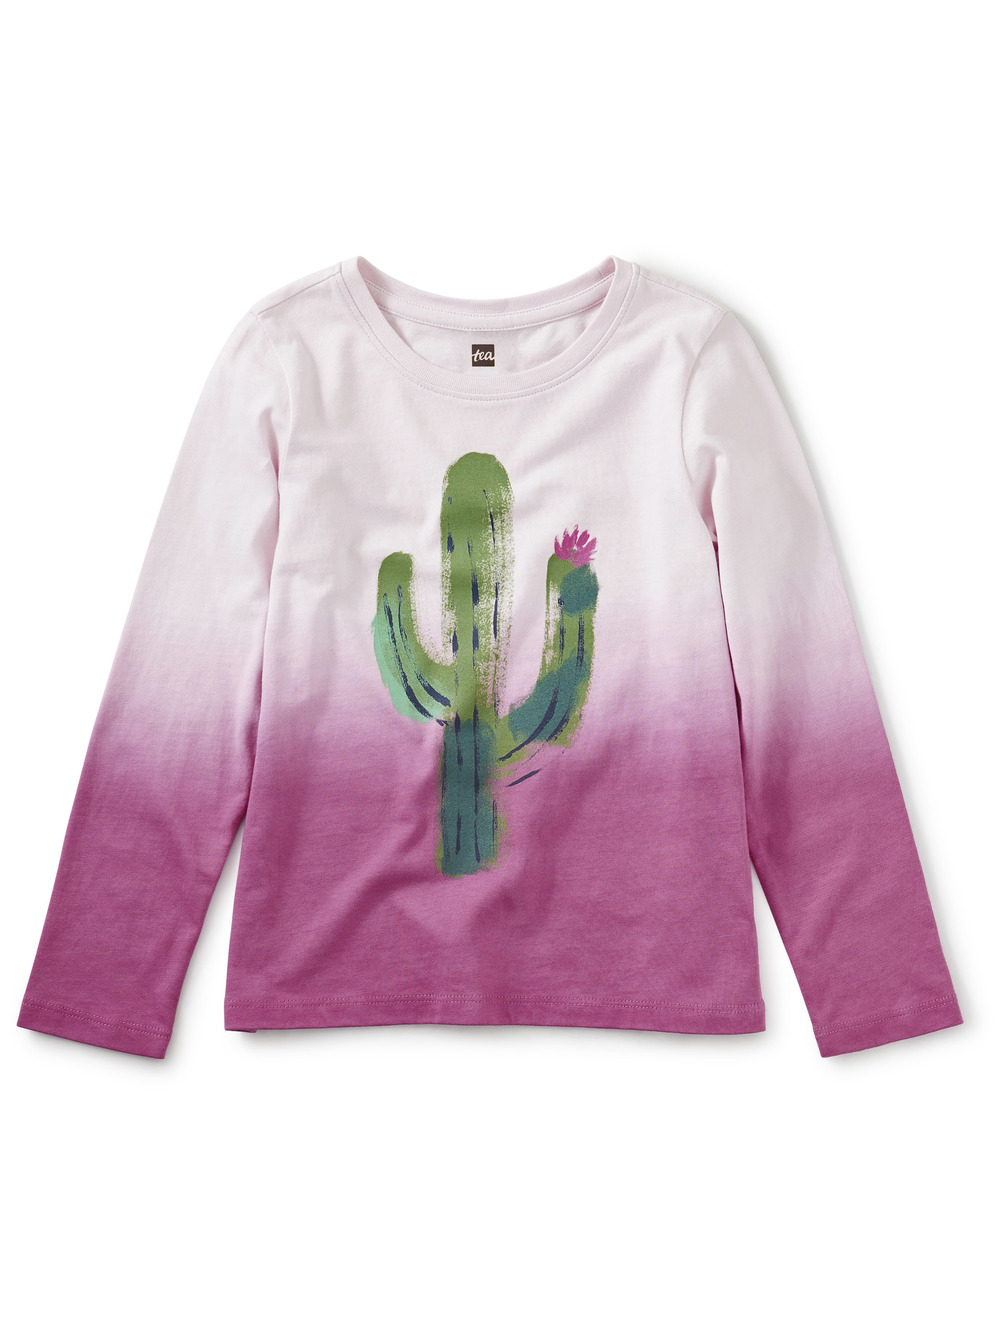 Prickly Dip-Dye Graphic Tee